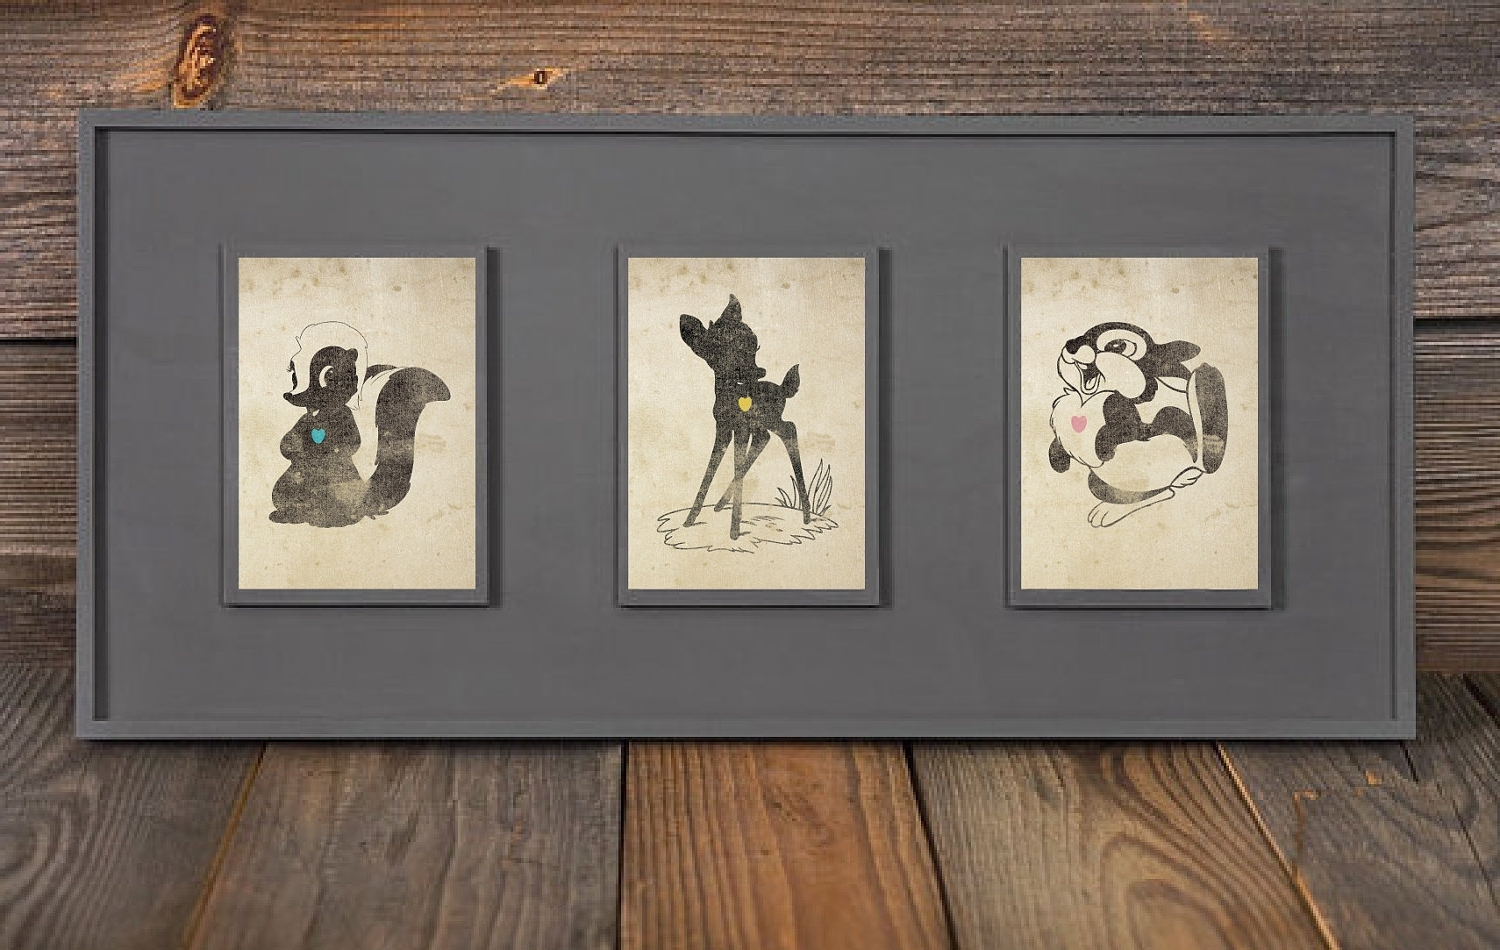 Bambi, Thumper, Flower Inspired Silhouettes: (3) 5X7 Art Prints Within Latest Disney Framed Art Prints (Gallery 1 of 15)